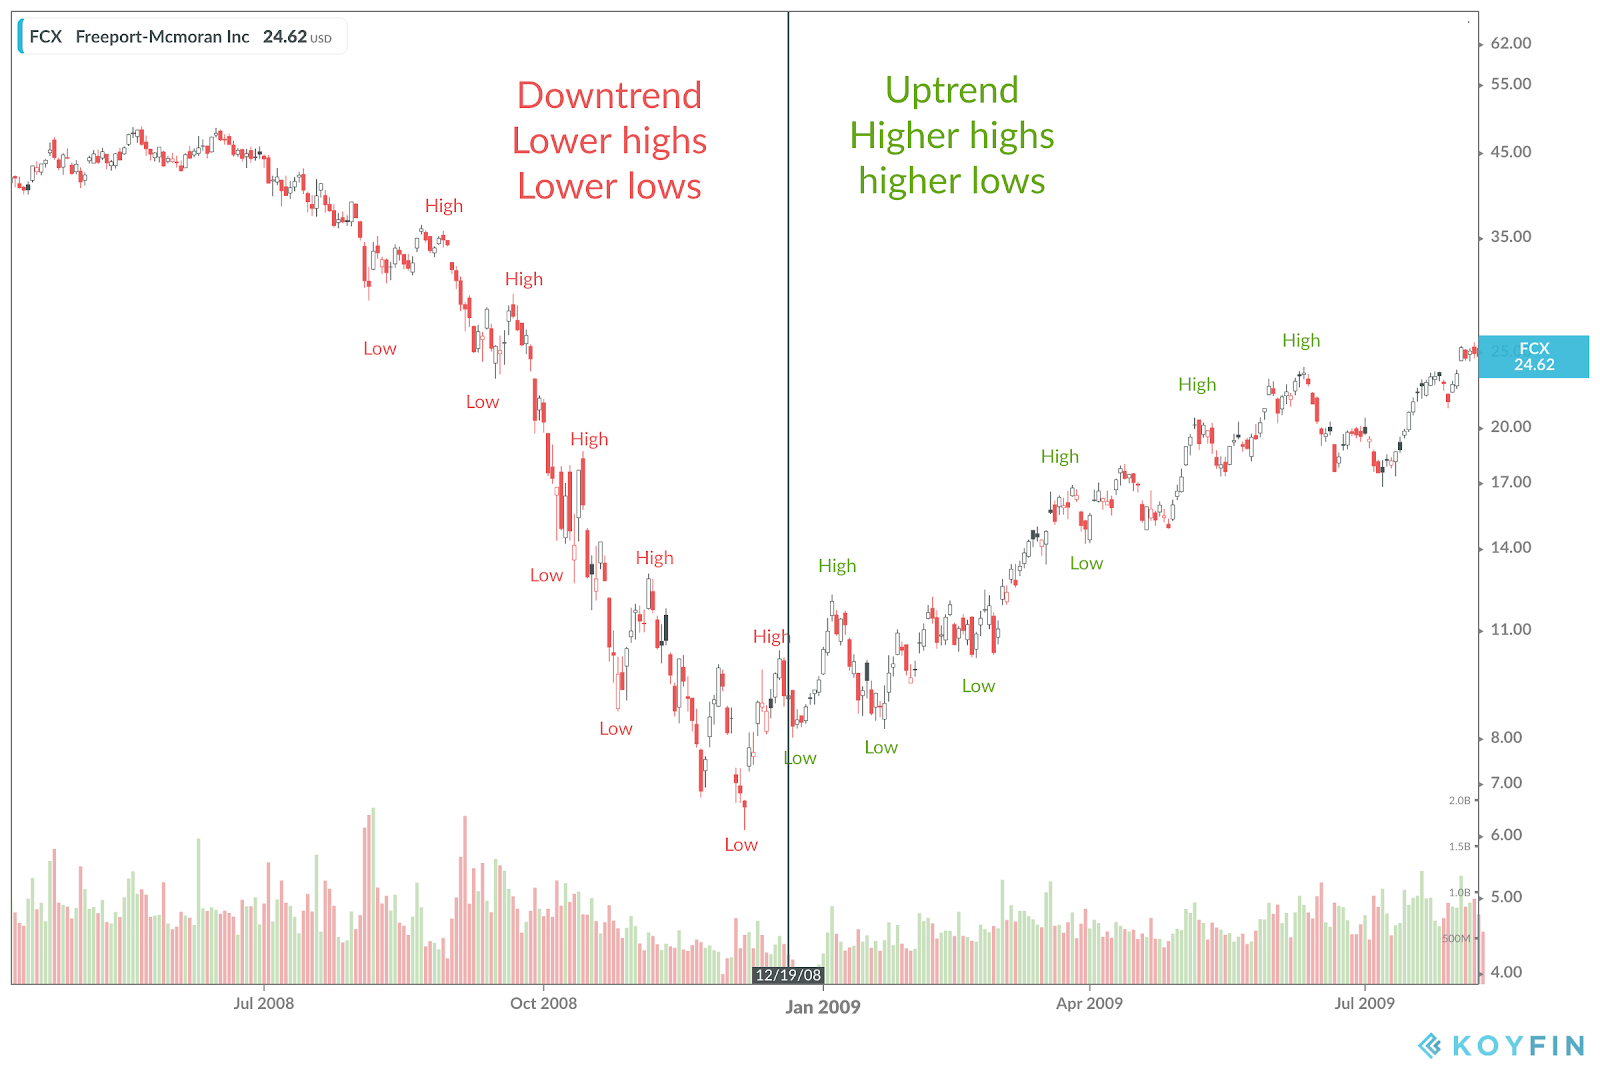 FCX downtrend and uptrend in 2009 because of reflation